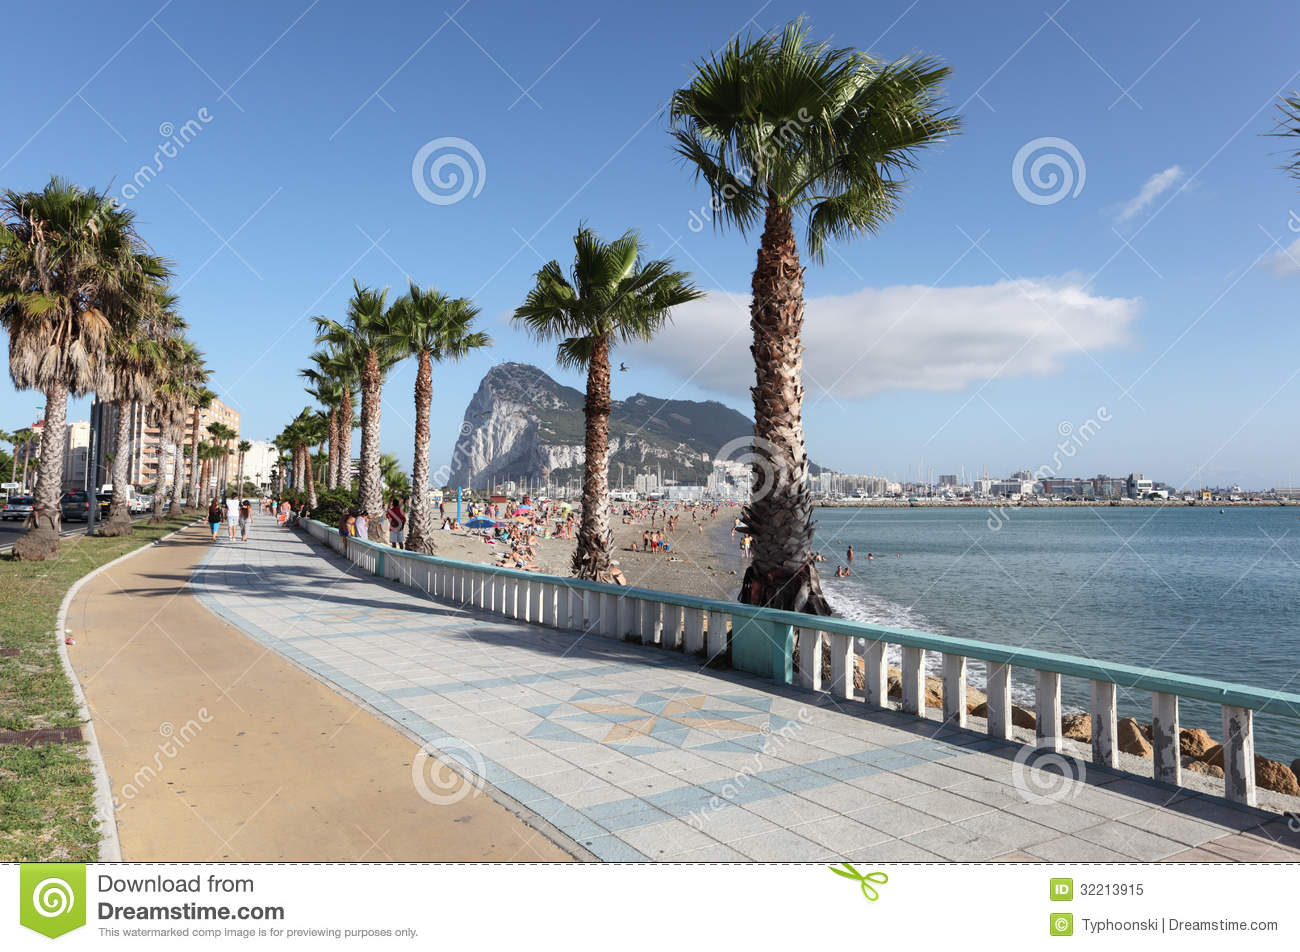 Royalty Free Stock Photo Promenade La Linea Spain De Concepcion Rock Gibraltar Background Image32213915 on Los Angeles Beach Houses